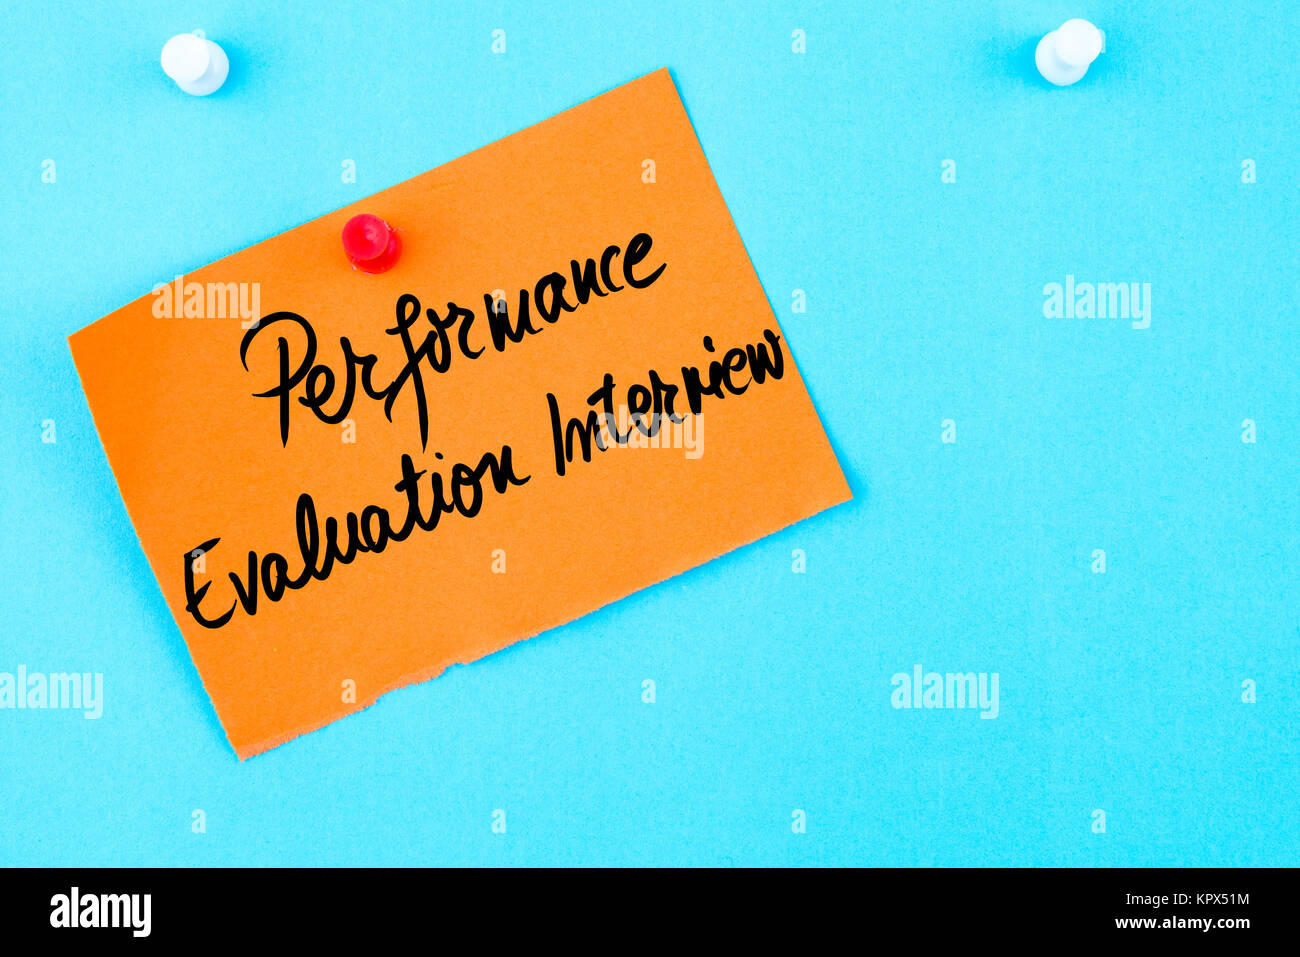 Performance Evaluation Interview written on orange paper note - Stock Image